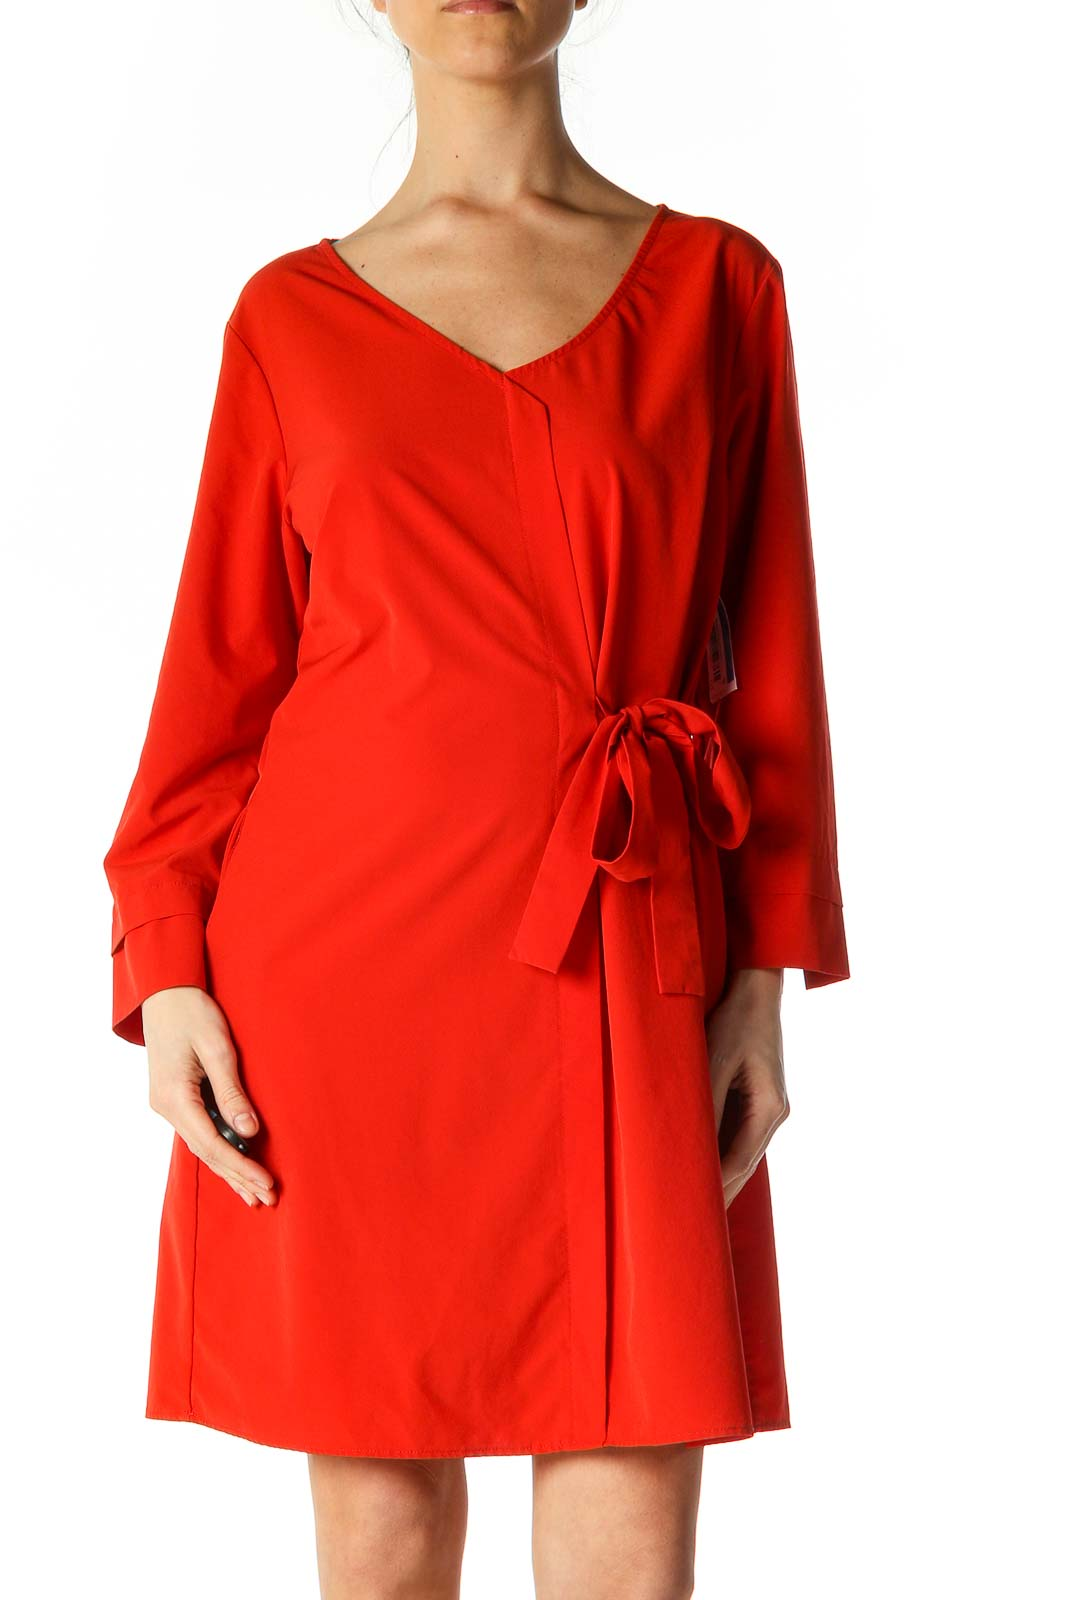 Red Solid Casual A-Line Dress Front